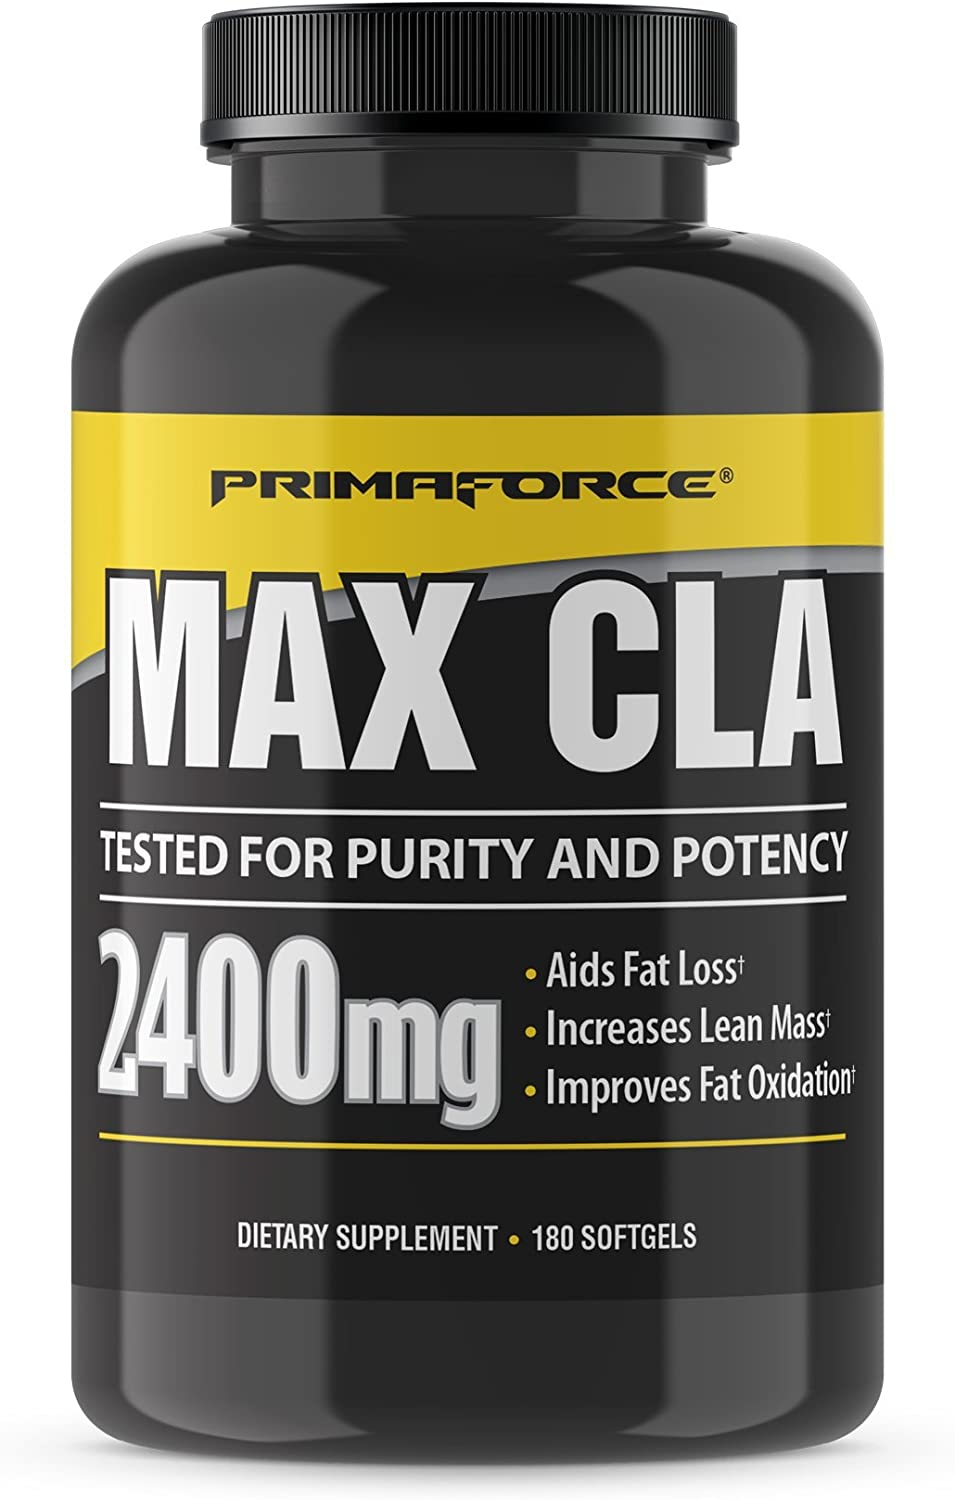 Primaforce Max CLA 2400 Conjugated Linoleic Acid Supplement, 180 Count Softgels – Aids Fat Loss/Increases Lean Mass/Improves Fat Oxidation: Health & Personal Care